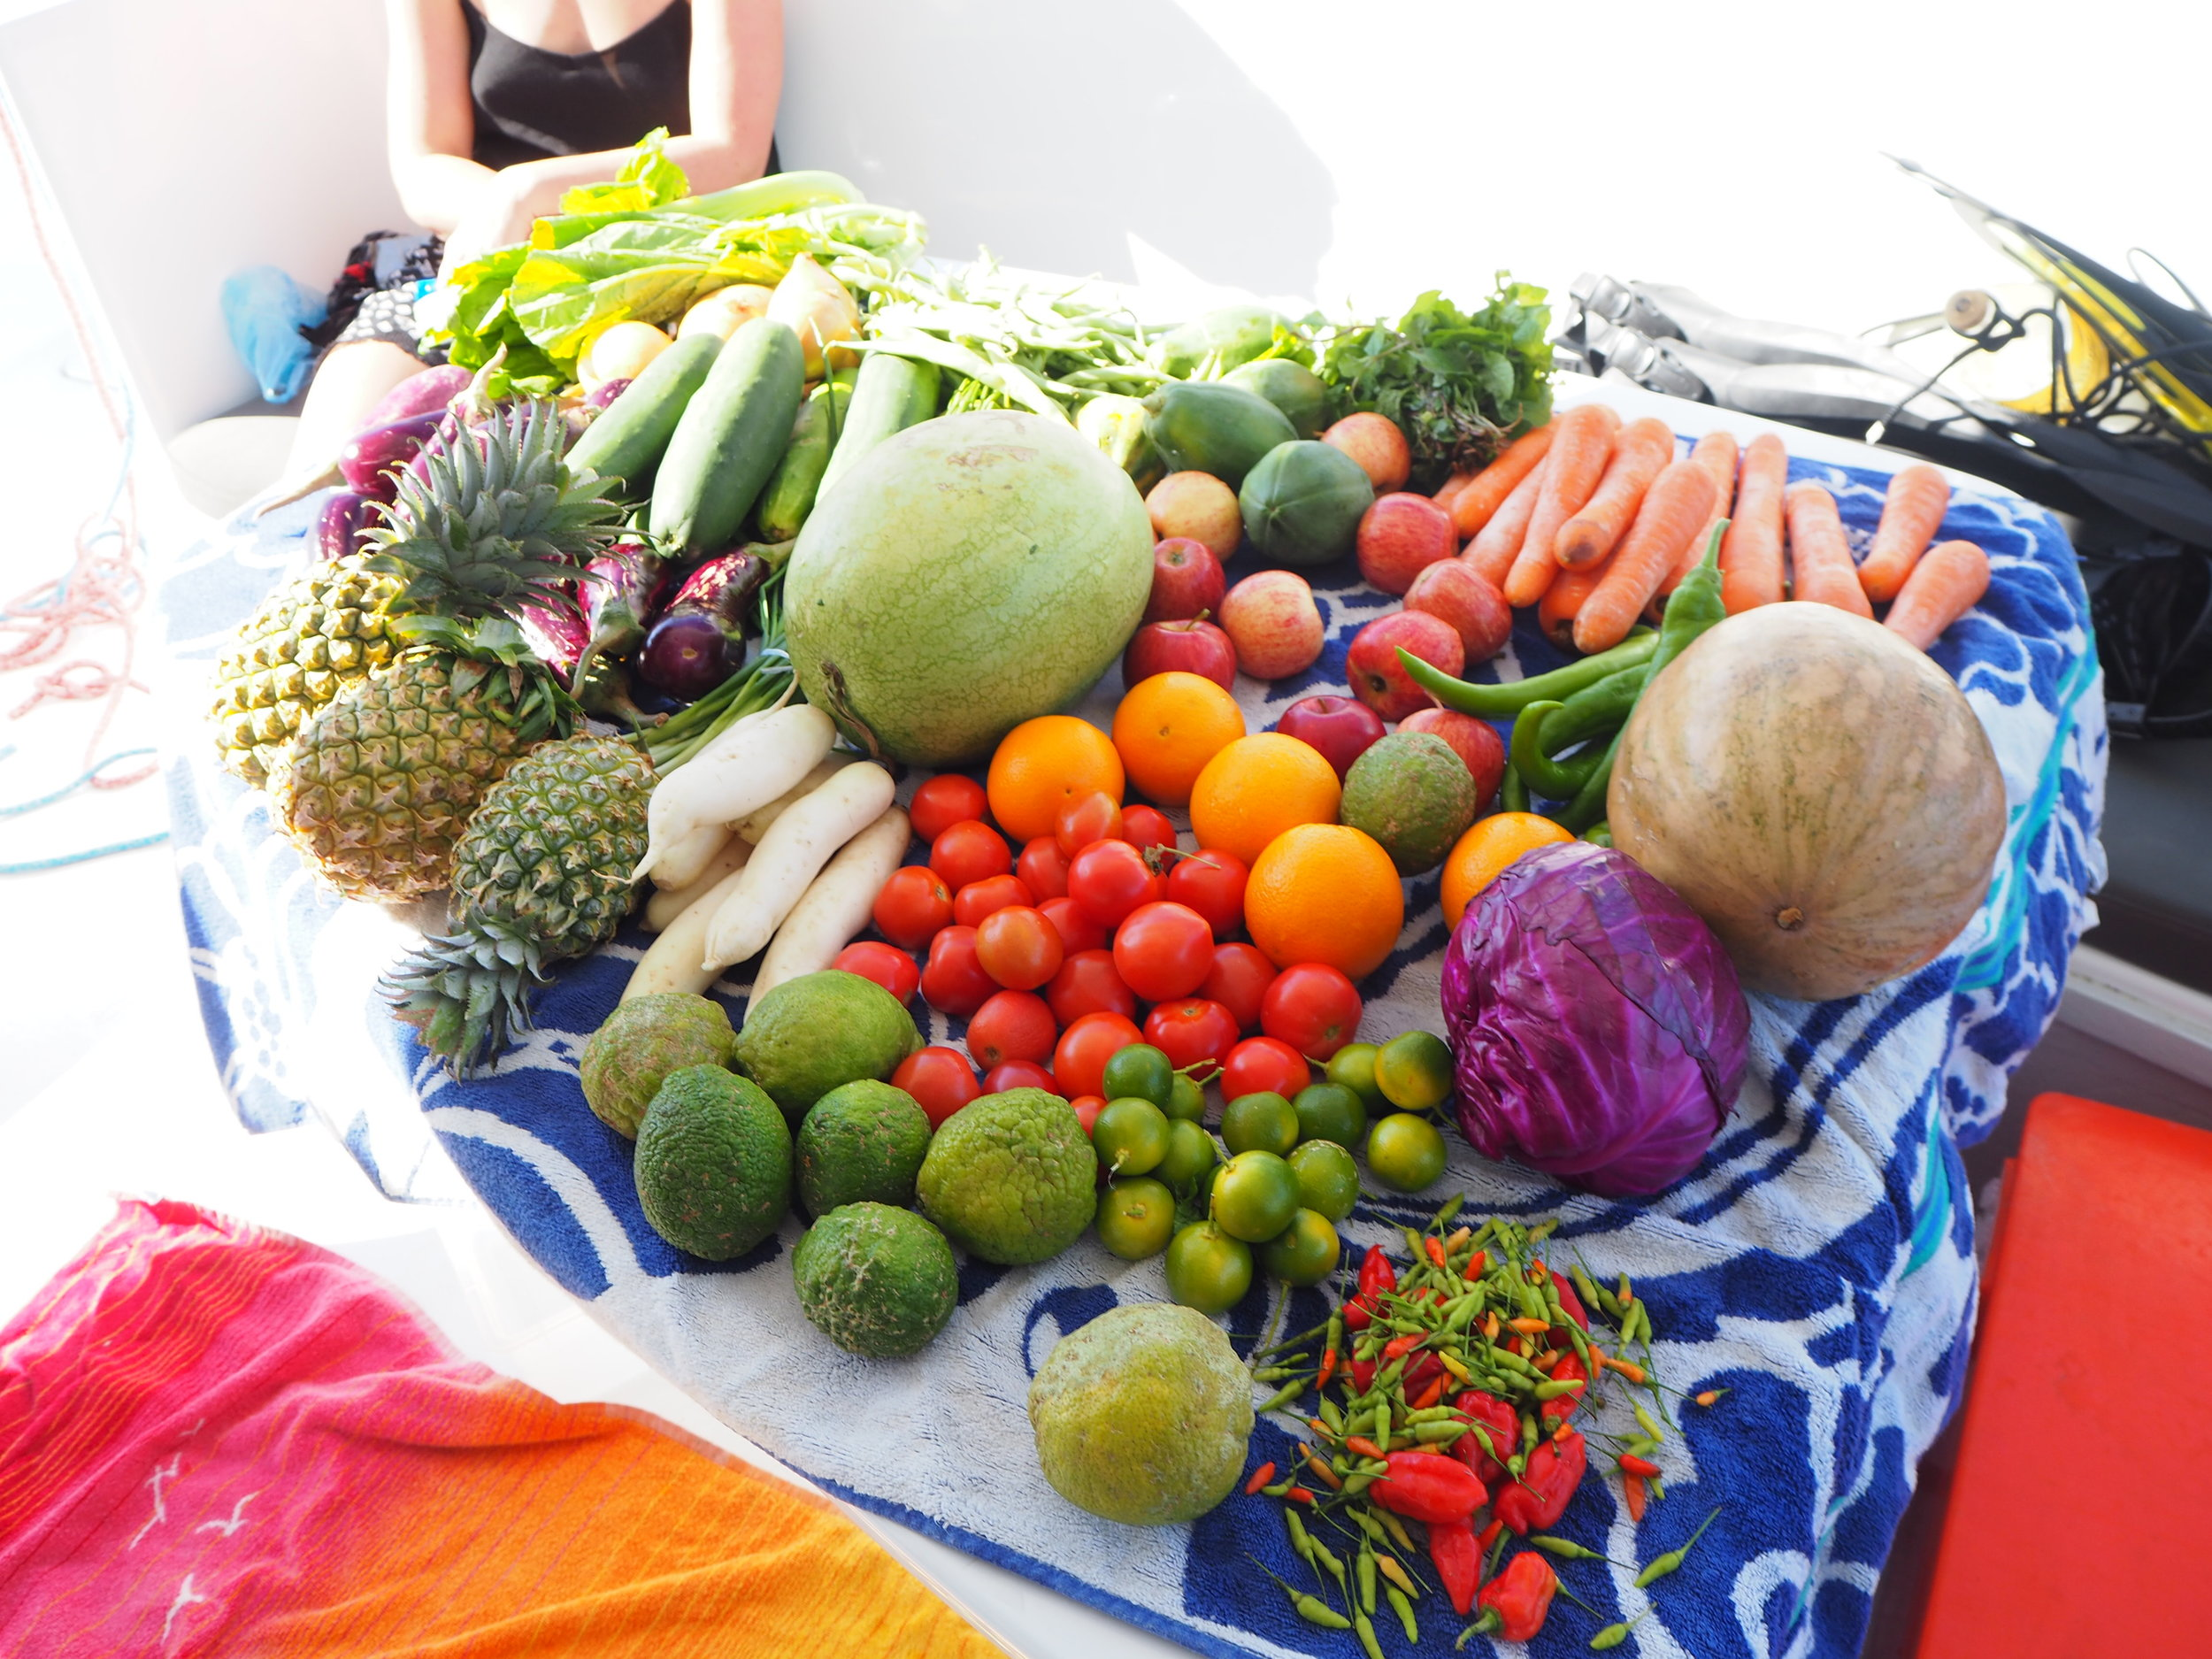 Provisioning for six people, market haul in Fiji